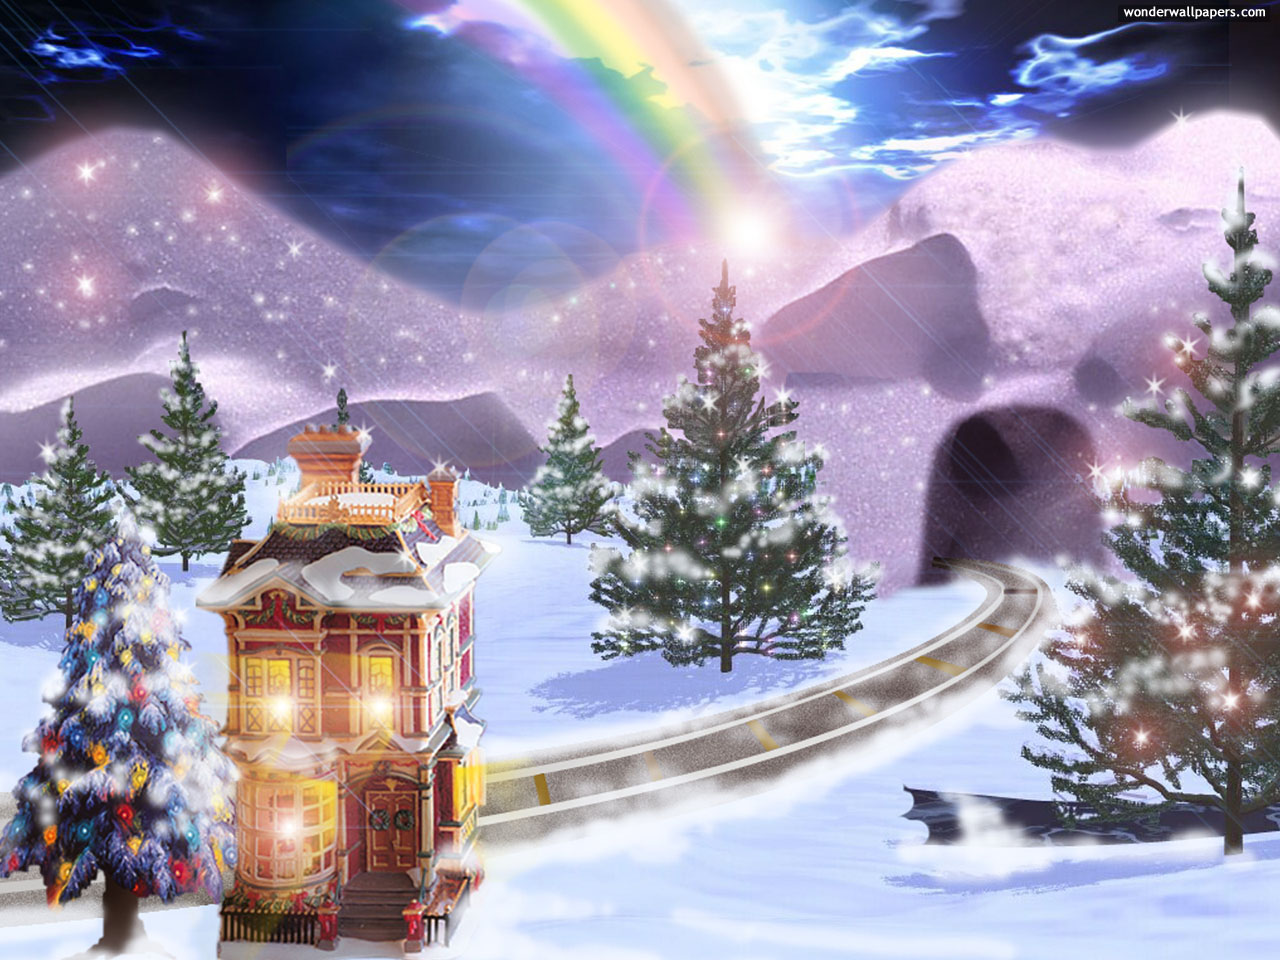 here are many beautiful christmas wallpapers and animated christmas wallpapers for you make your laptop impressive by setting christmas wallpapers animated